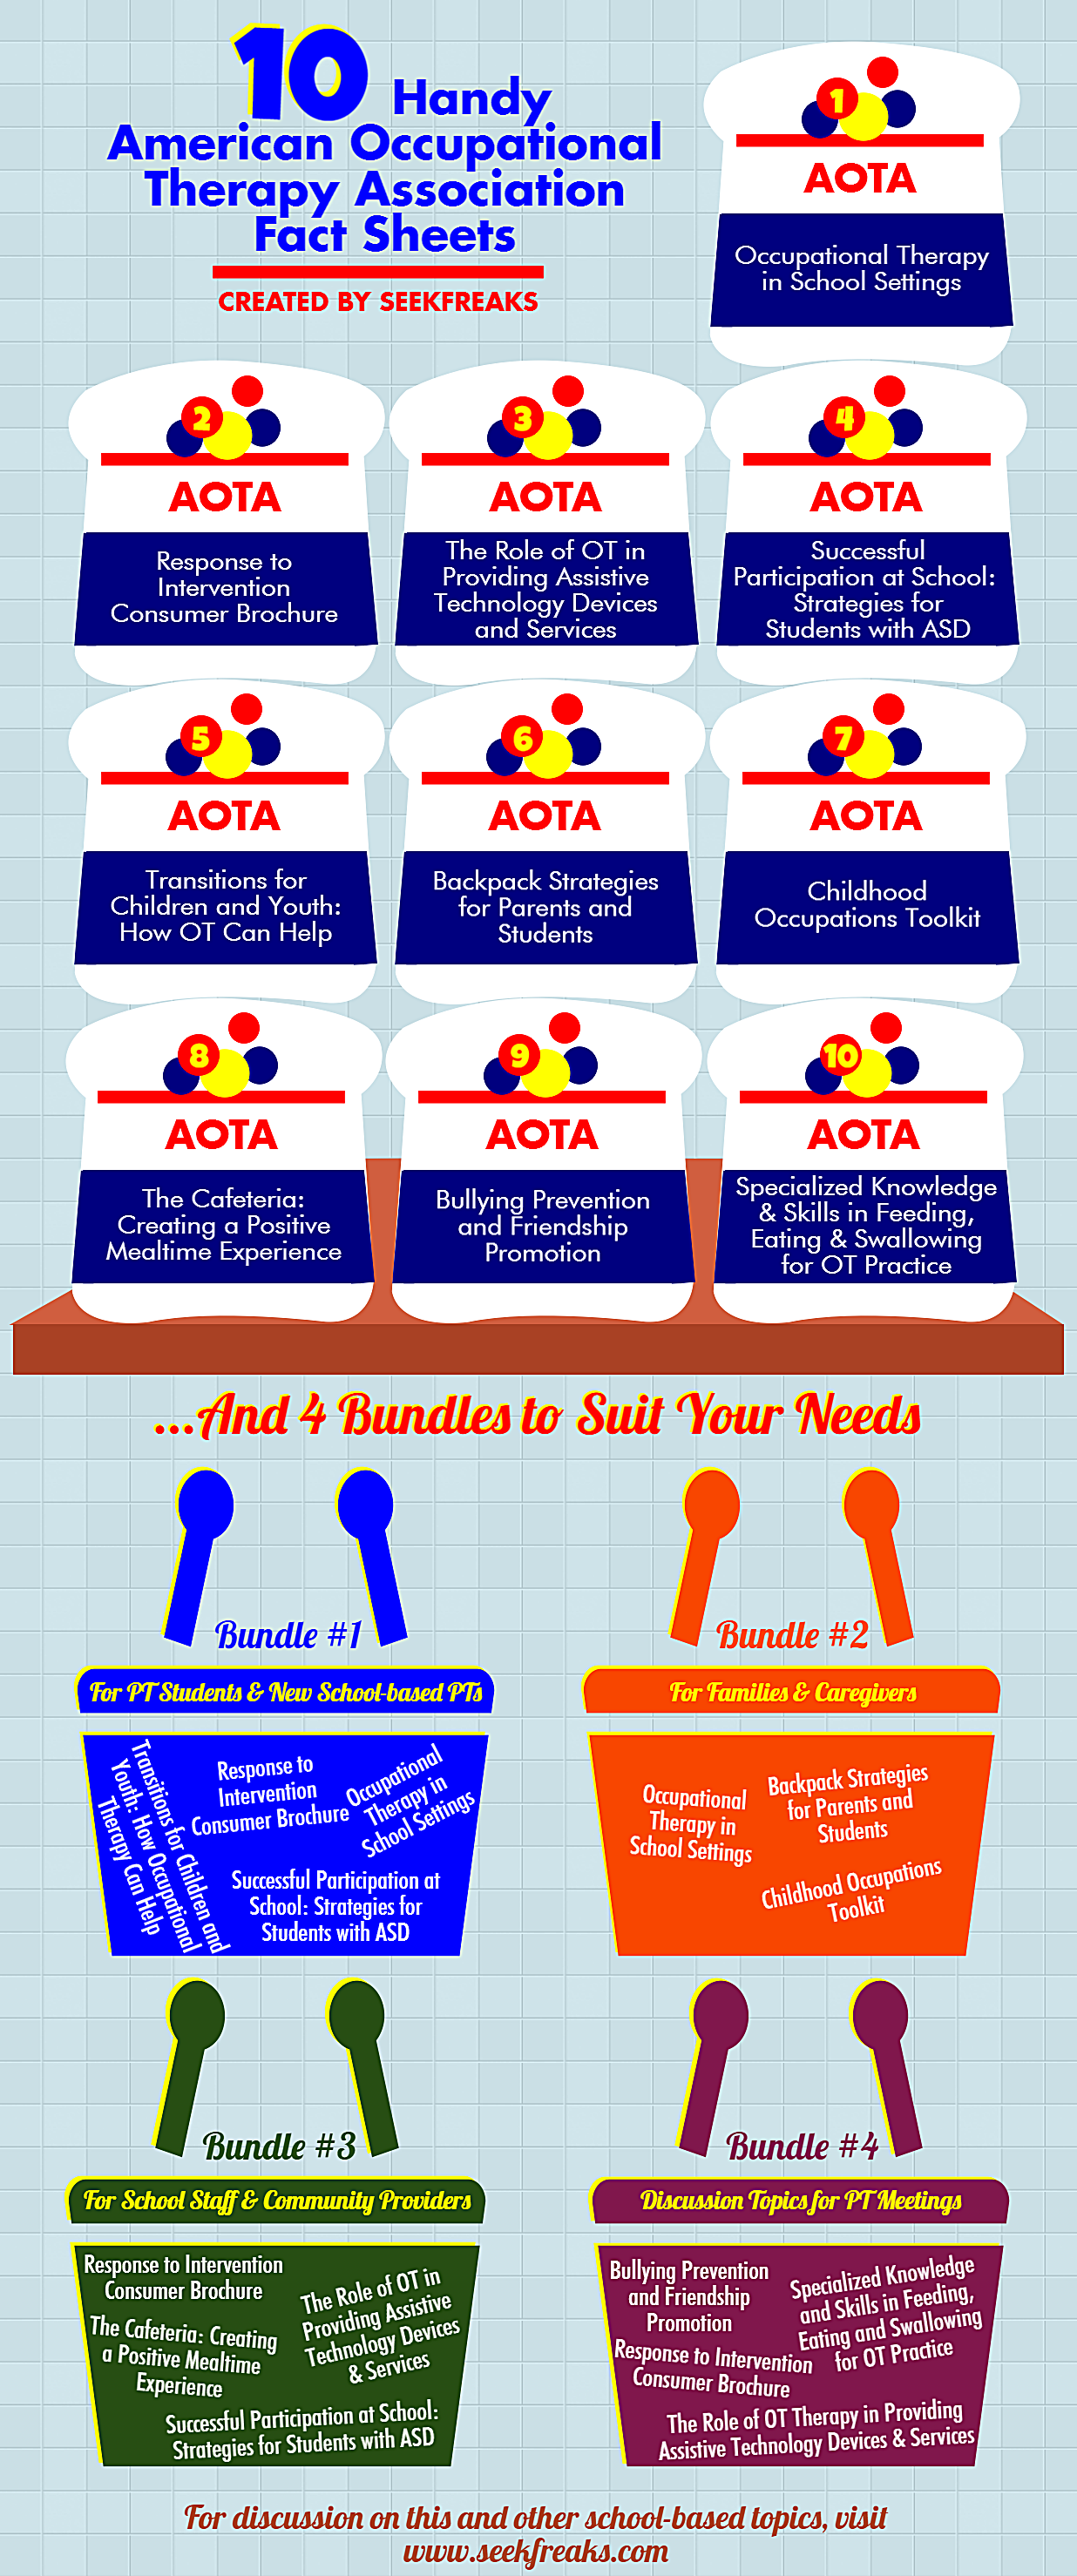 10-handy-american-occupational-therapy-association-fact-sheets-seekfreaks